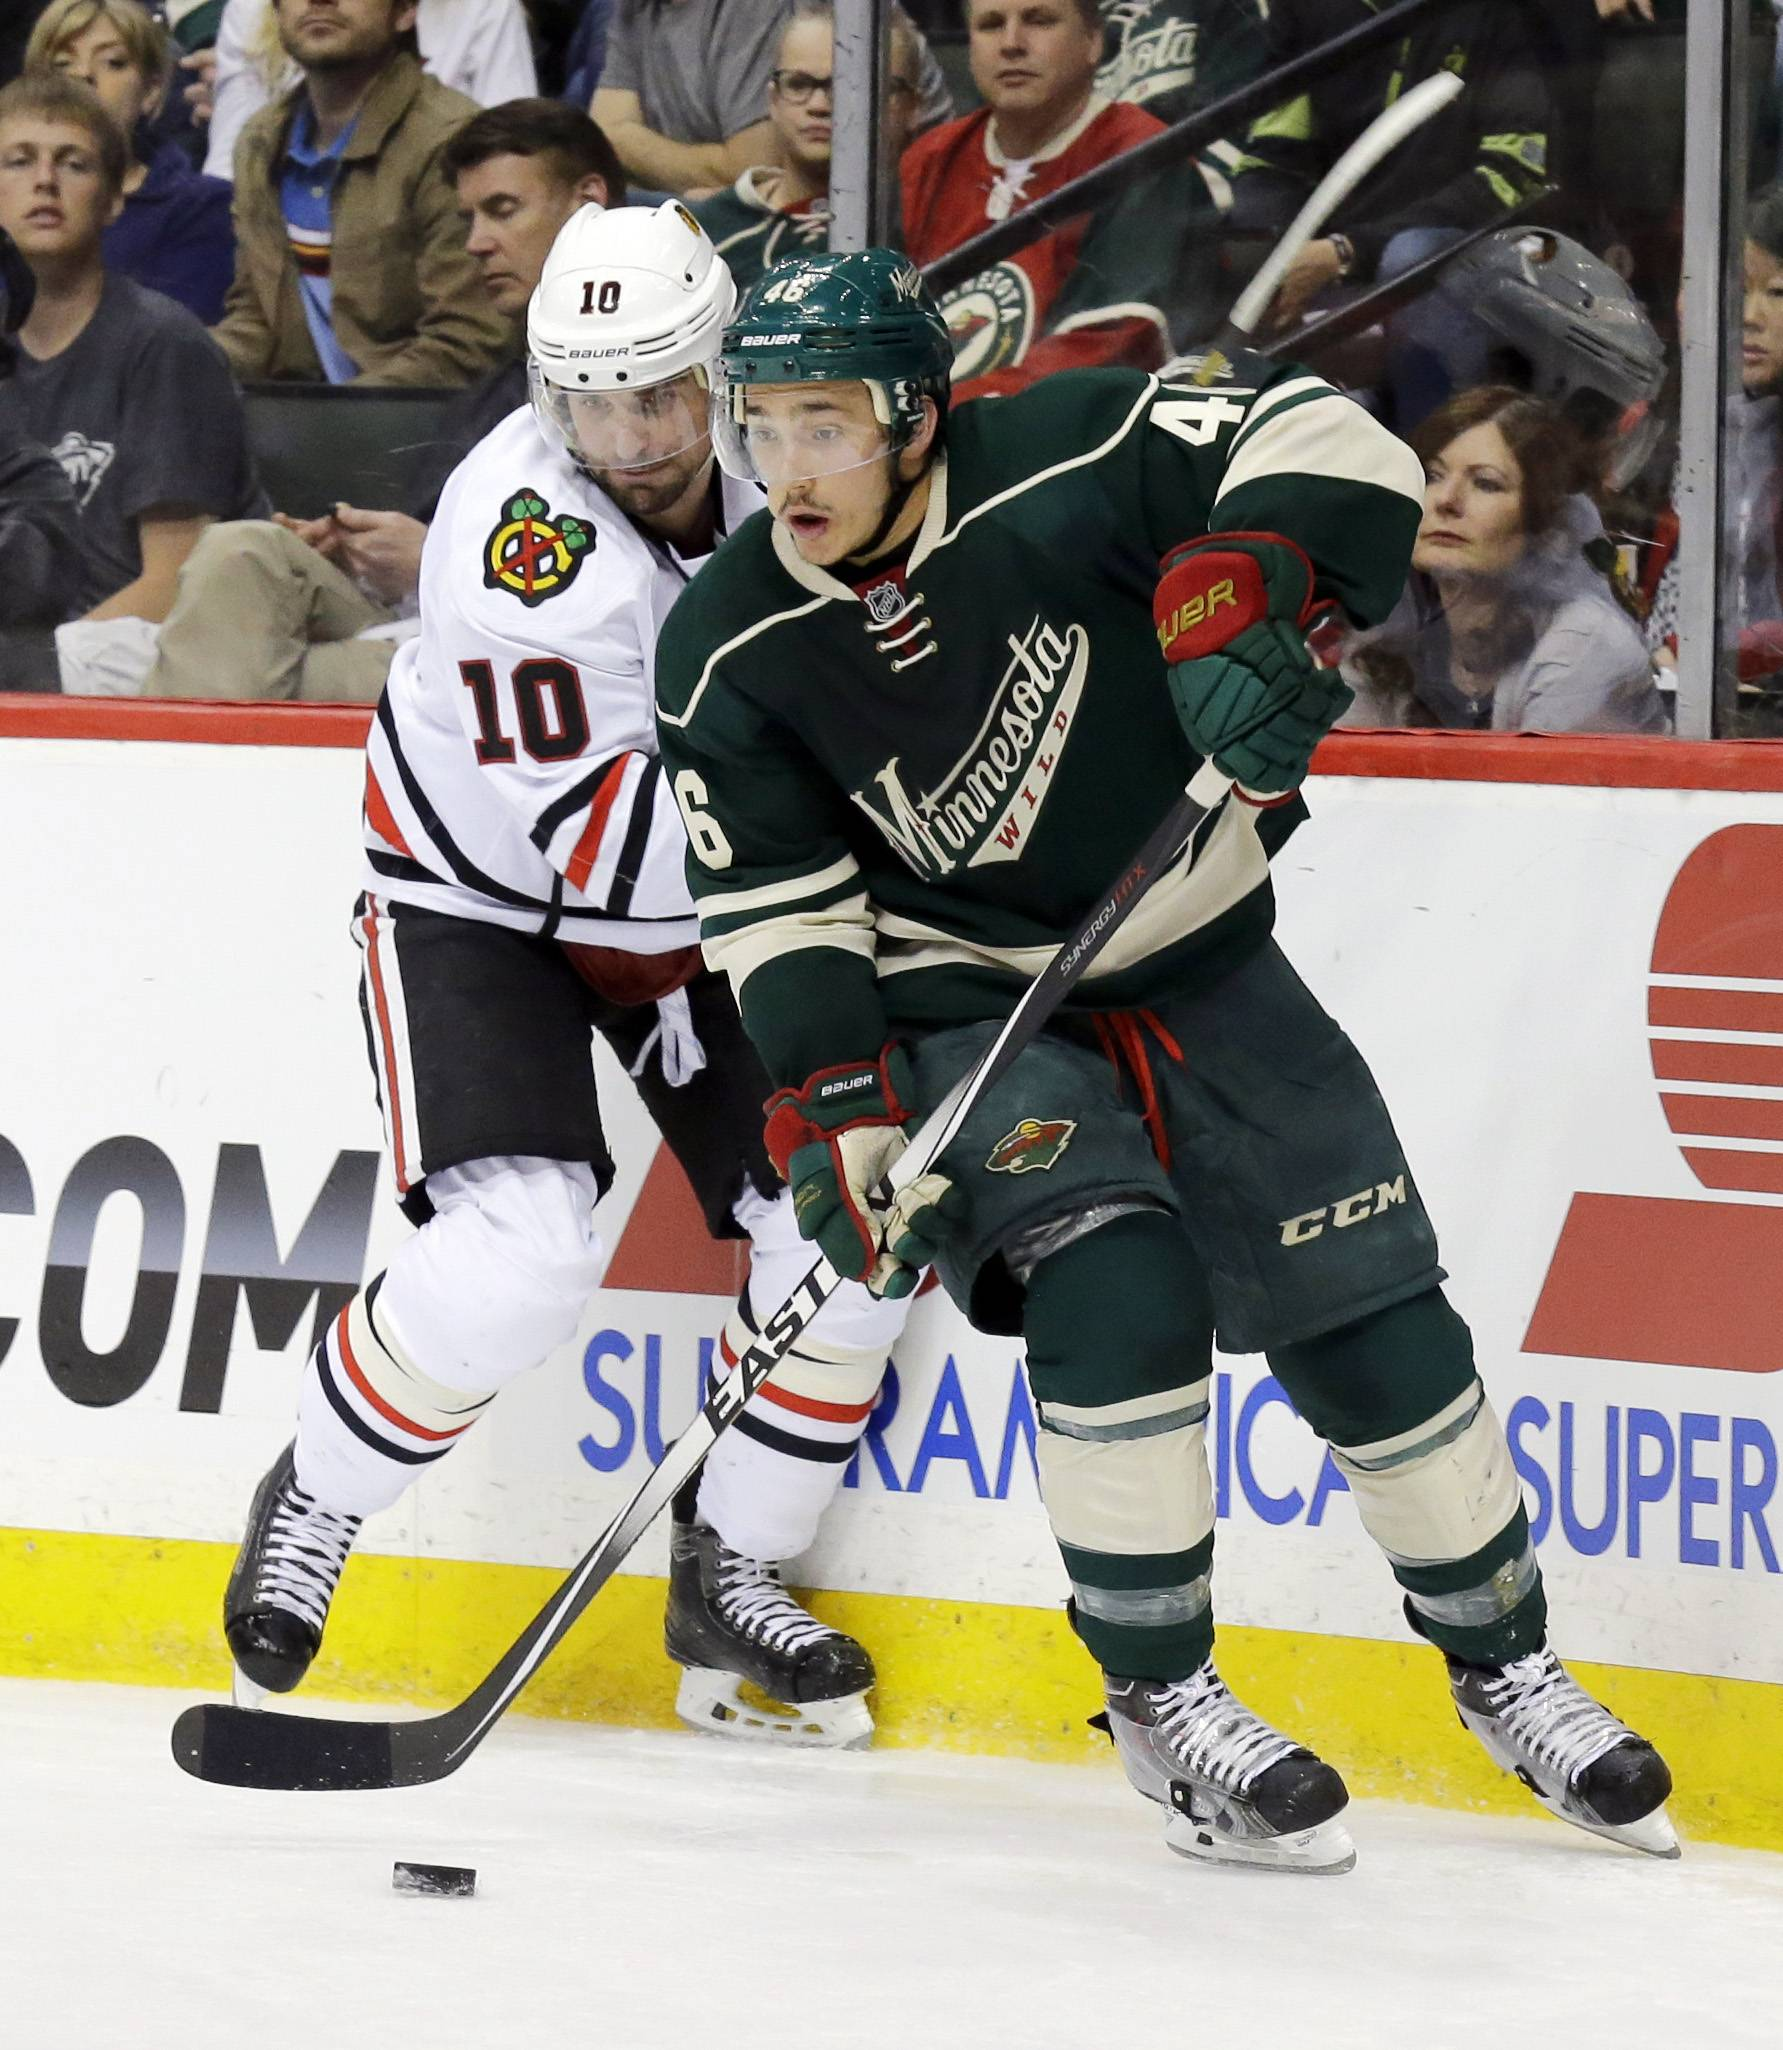 Minnesota Wild defenseman Jared Spurgeon (46) and Chicago Blackhawks left wing Patrick Sharp (10) chase the puck during the second period of Game 3 of an NHL hockey second-round playoff series in St. Paul, Minn., Tuesday, May 6, 2014.